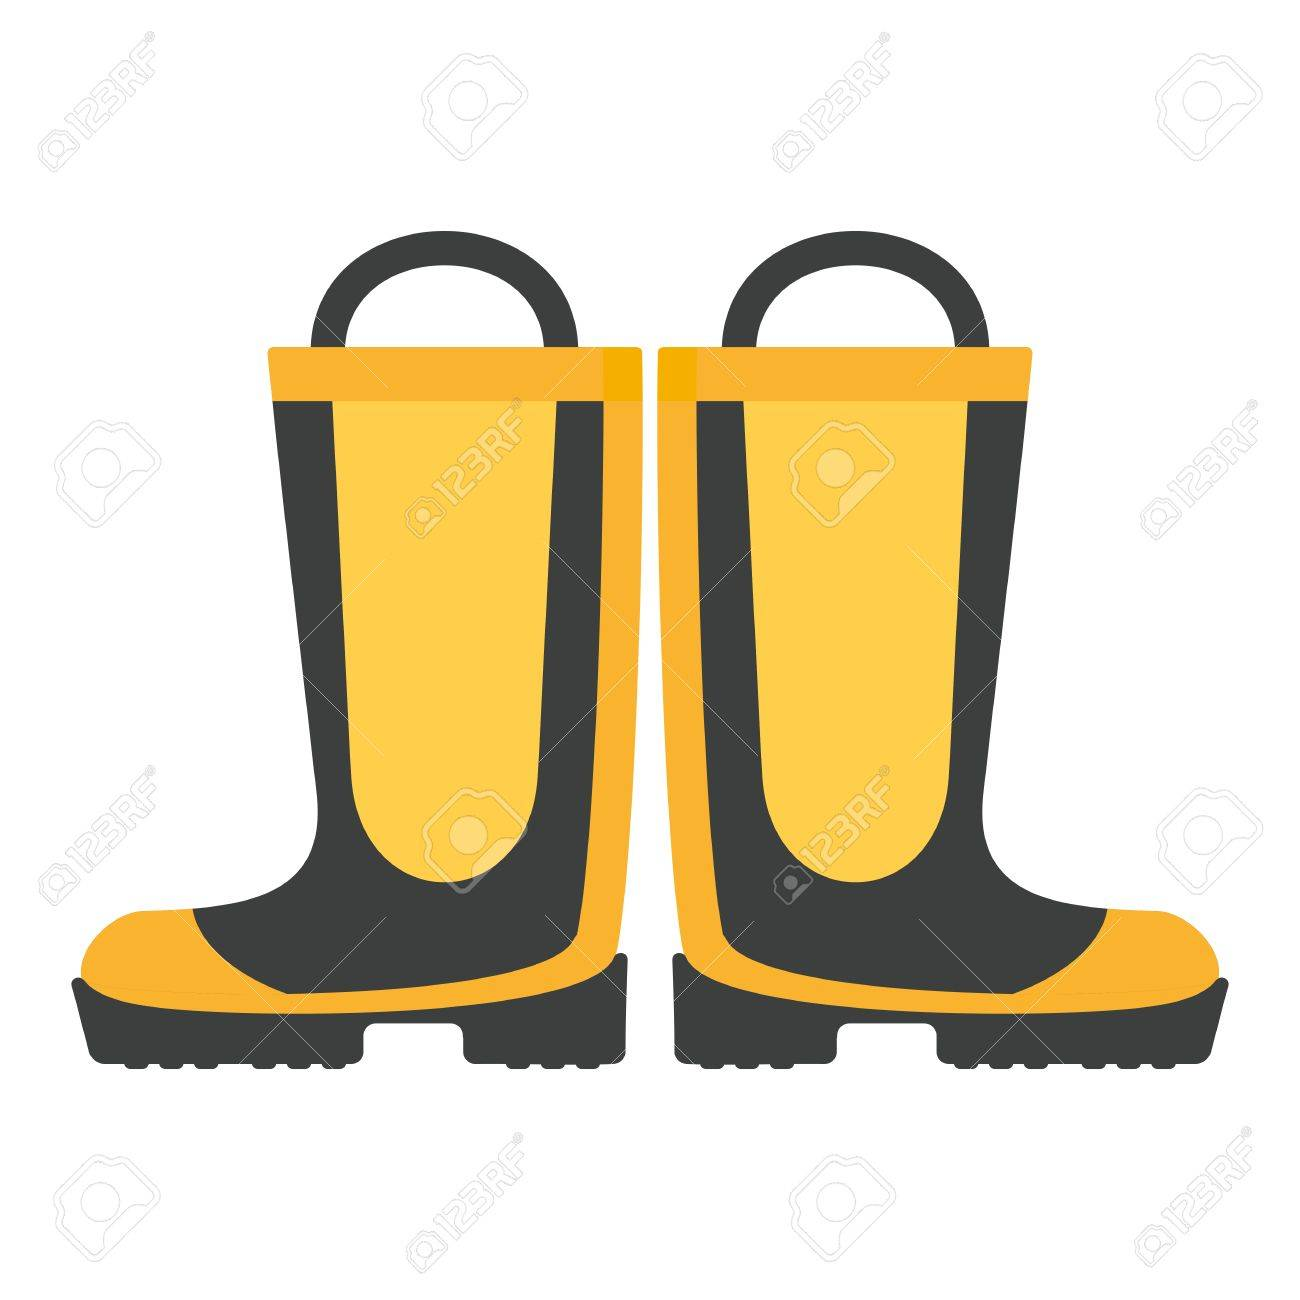 Fireproof boots. Firefighter equipment and clothing, tools, accessories..